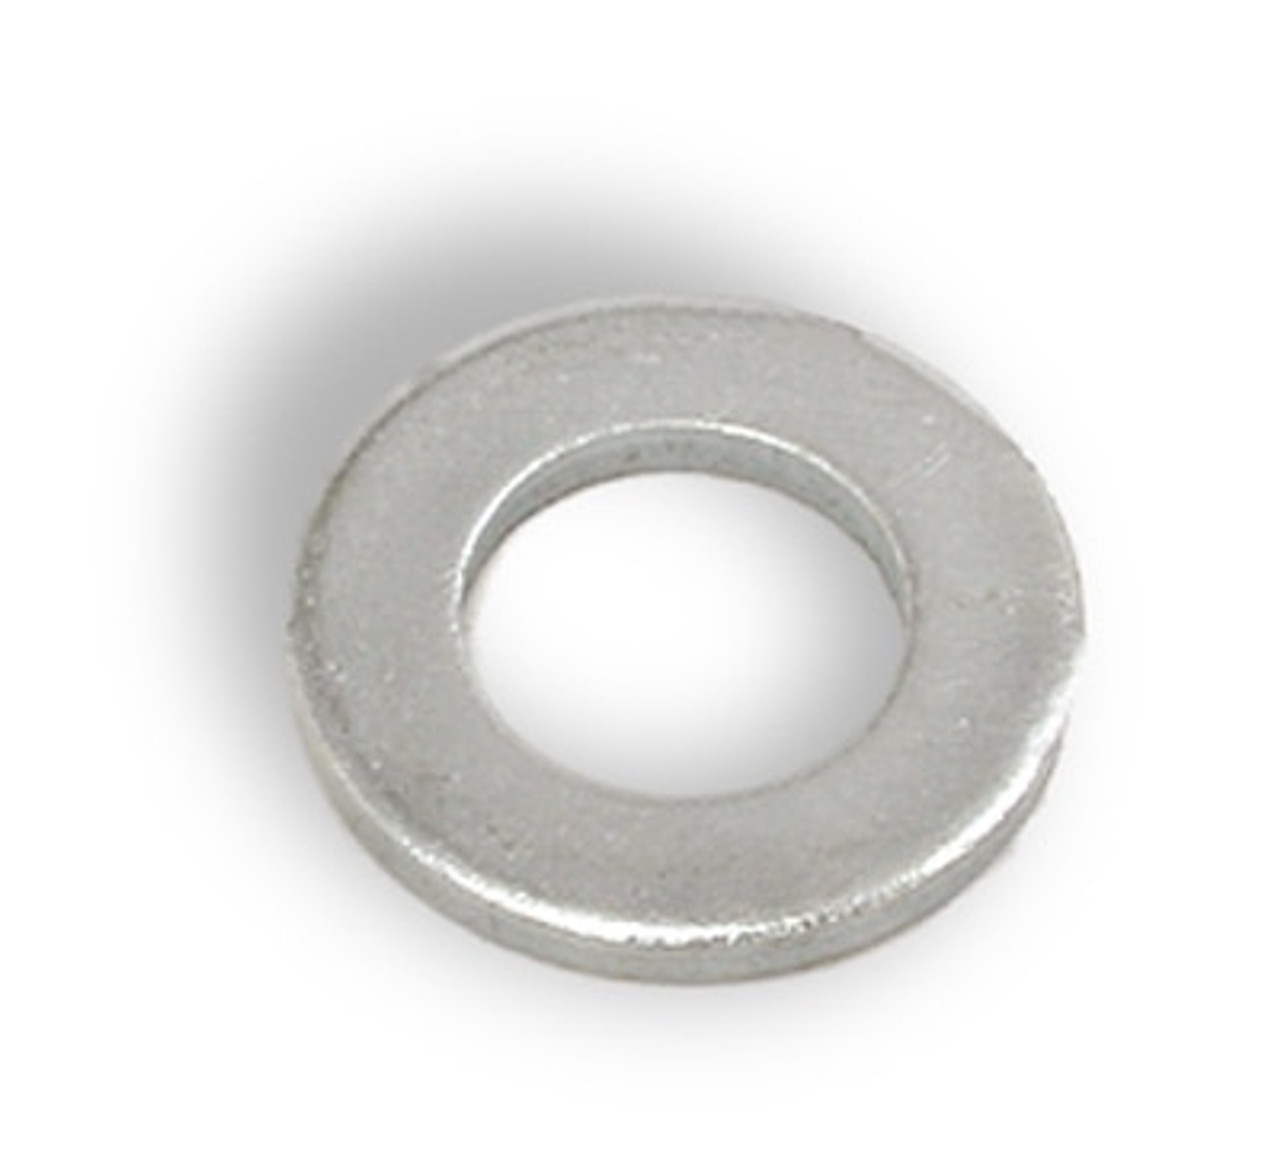 N40000006  Washer for cock-bead stops for cock-bead stops for MORSO notching machines